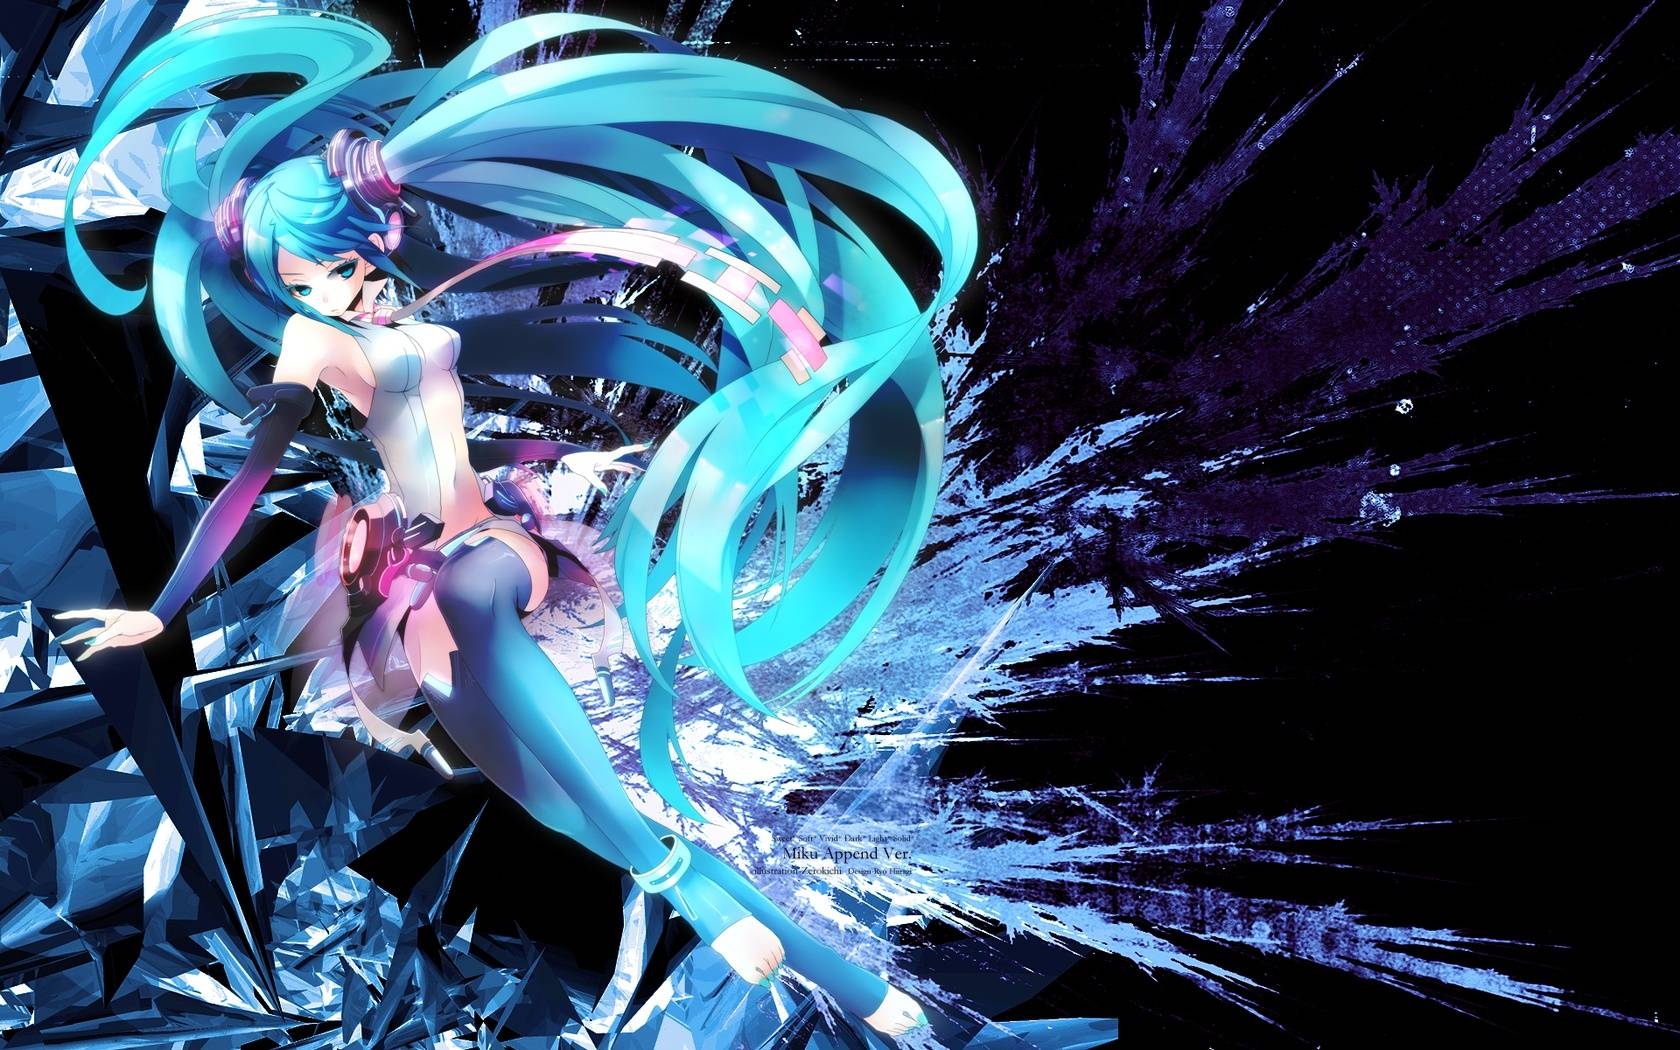 Cool Miku Hatsune   Anime Manga Wallpaper 1680x1050